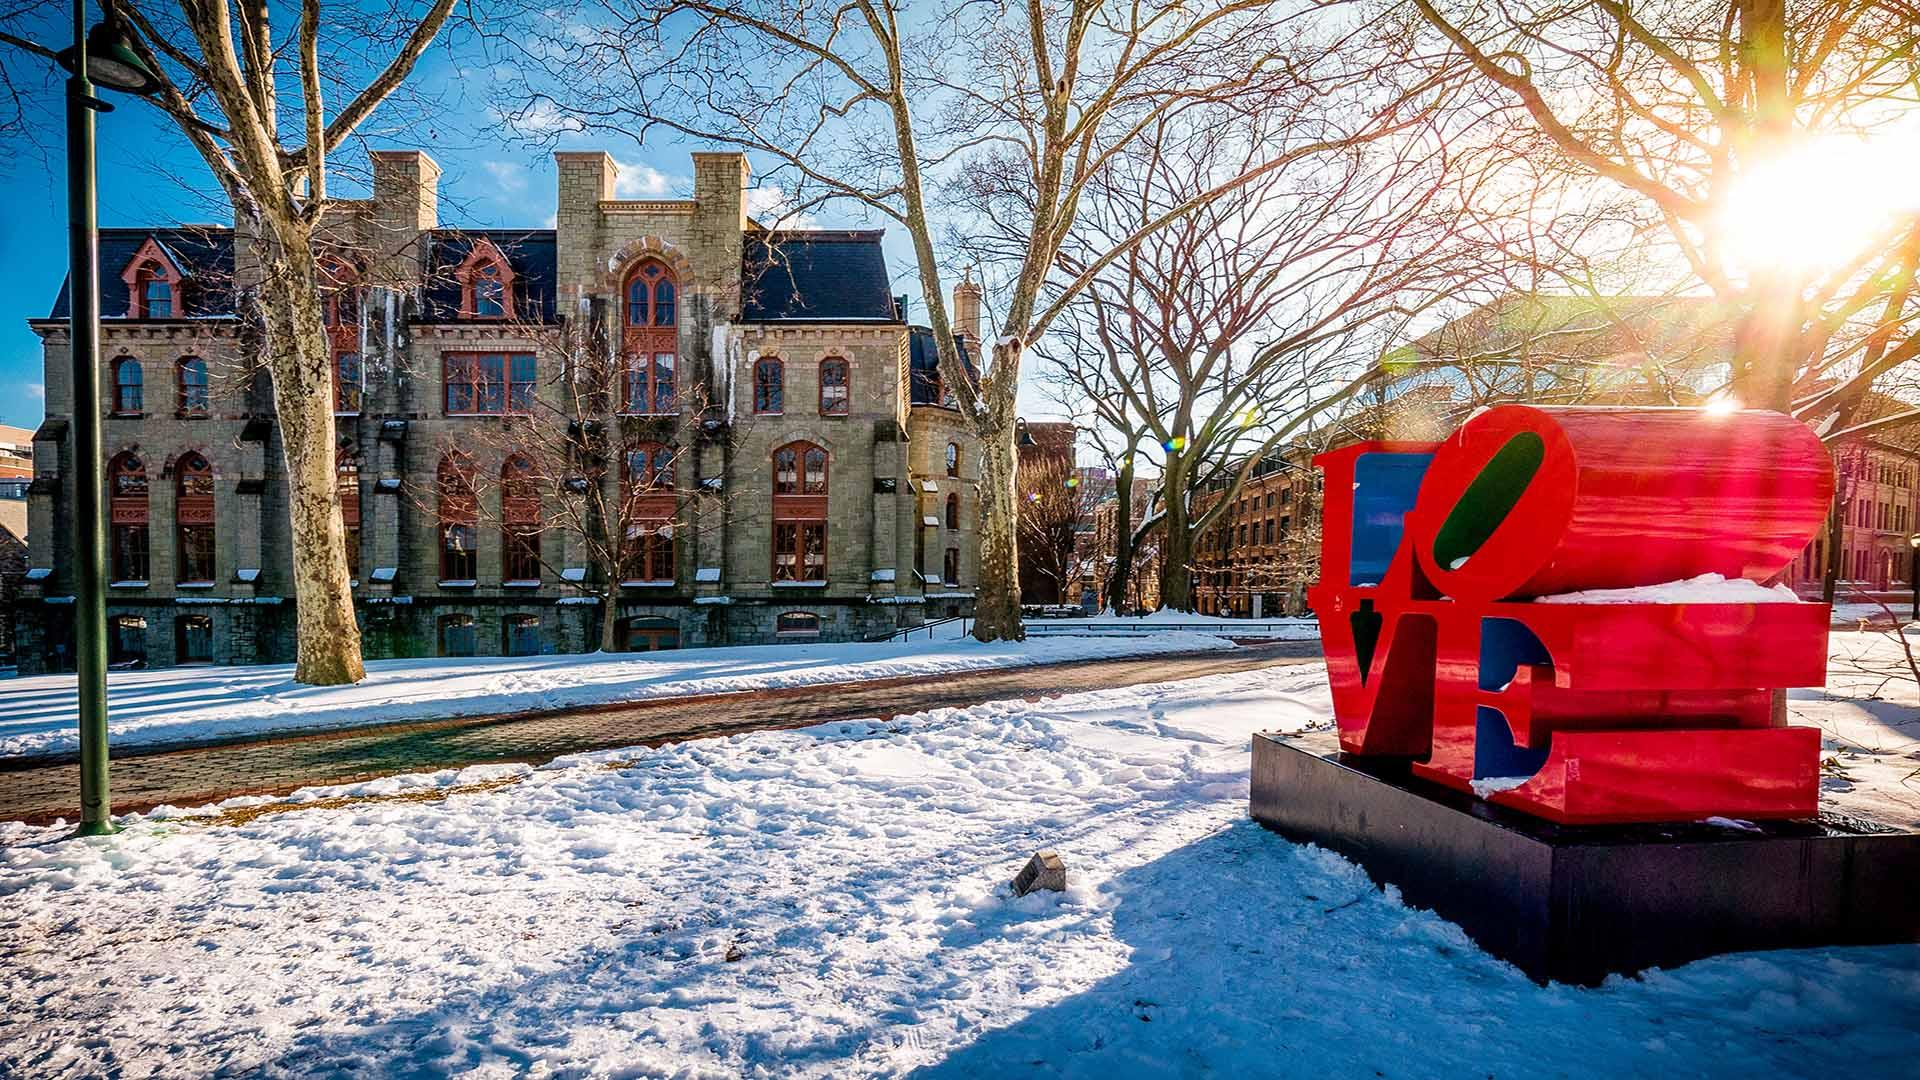 Winter photo with snow, Claudia Cohen Hall, and Love Statue on Penn's campus